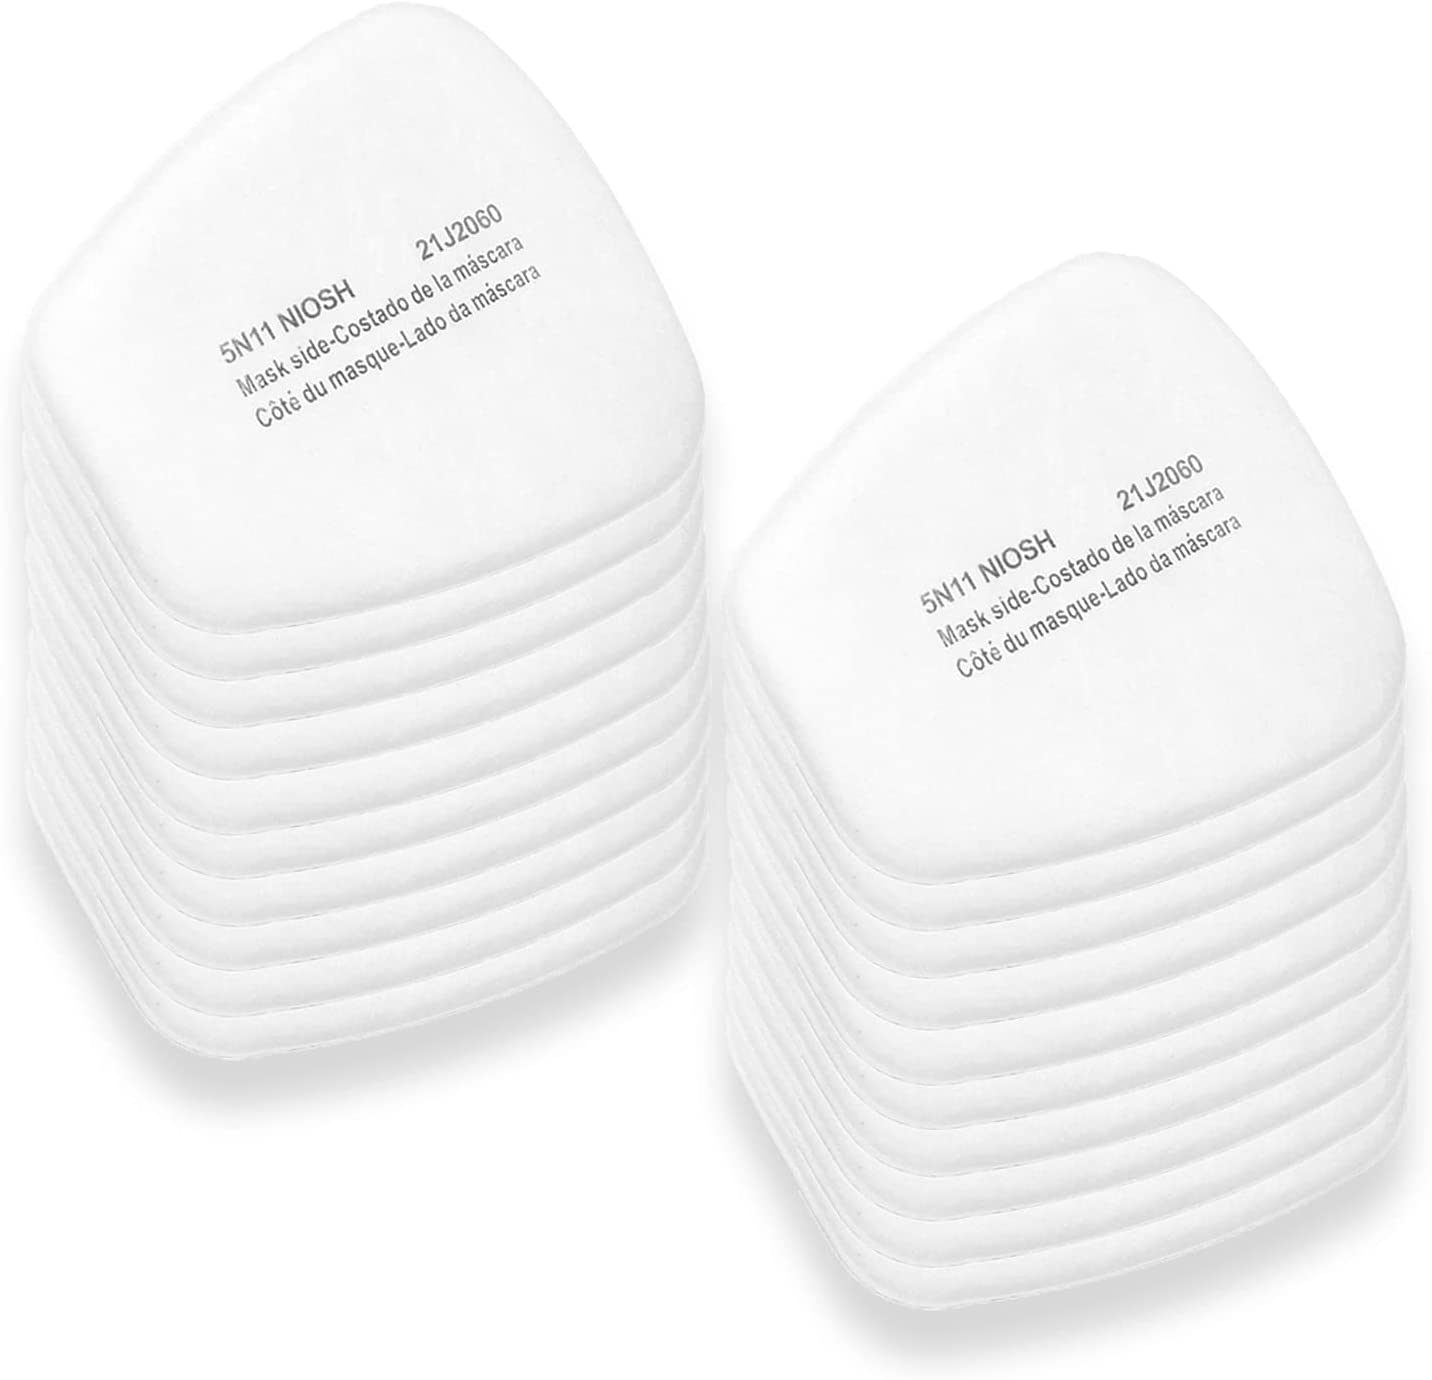 Particulate Popular brand Filter 5N11 Classic Cotton with Compatible Spr 5P71